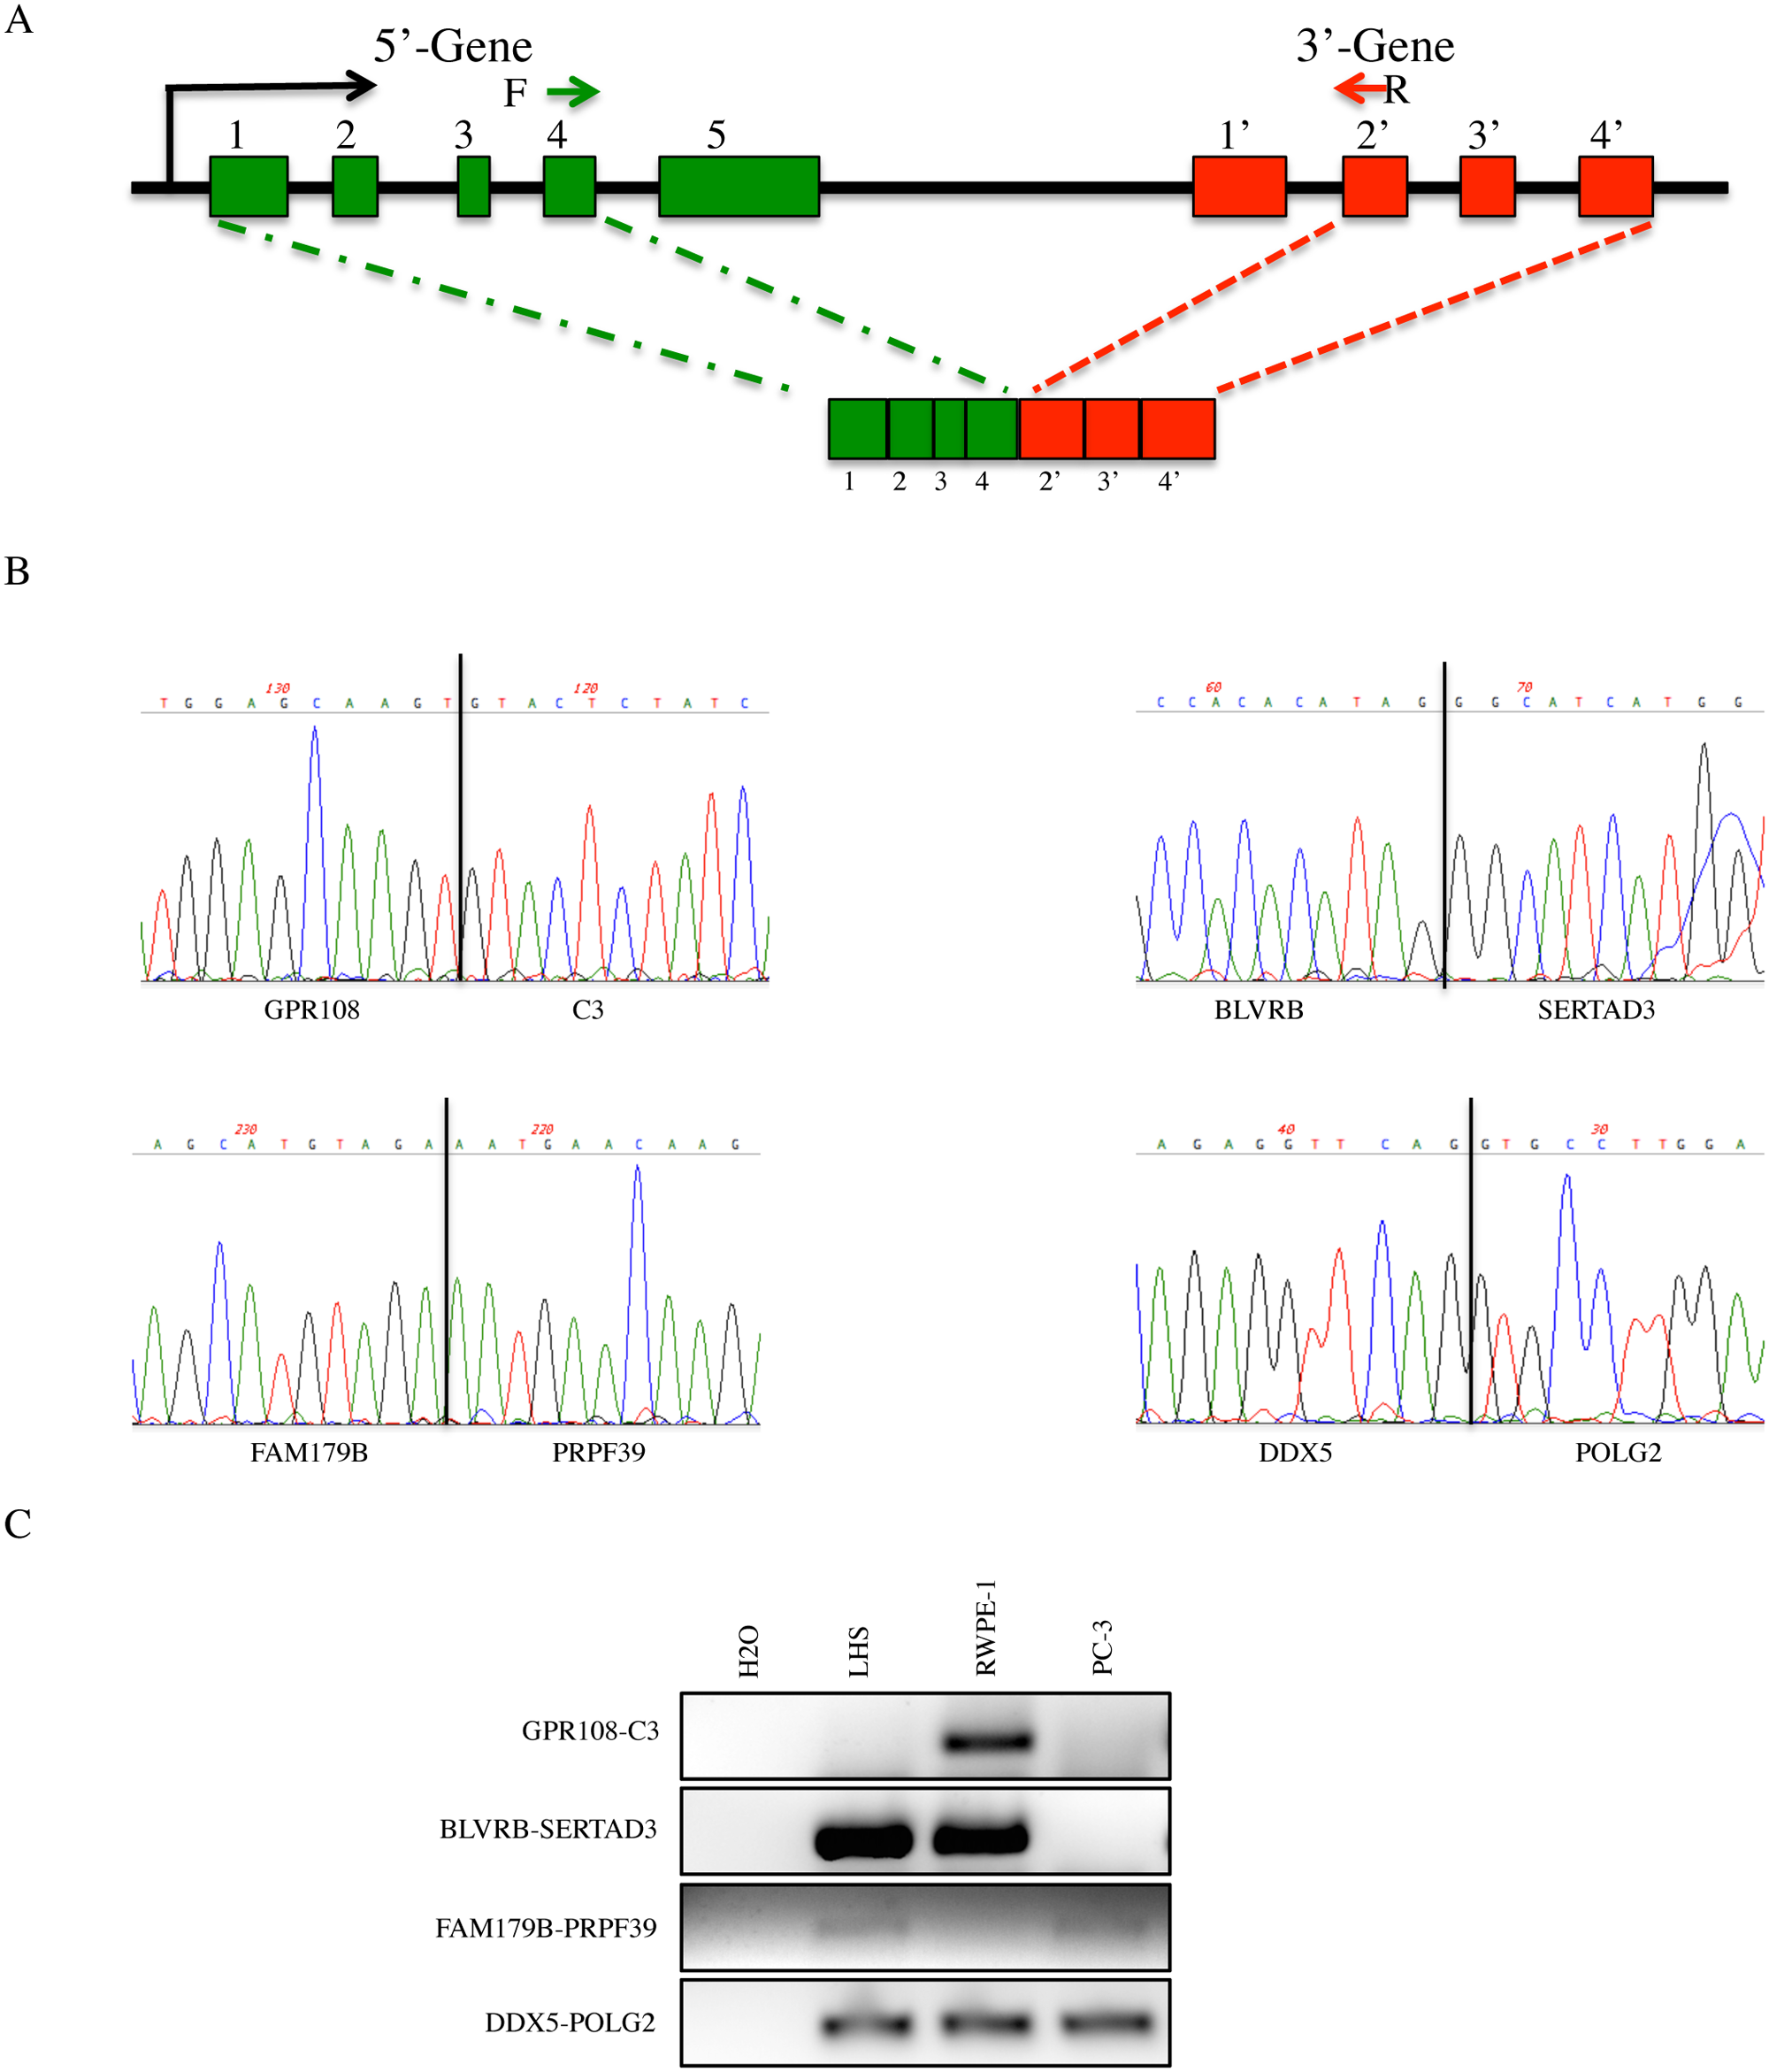 Identification of novel cis-SAGe candidate events.